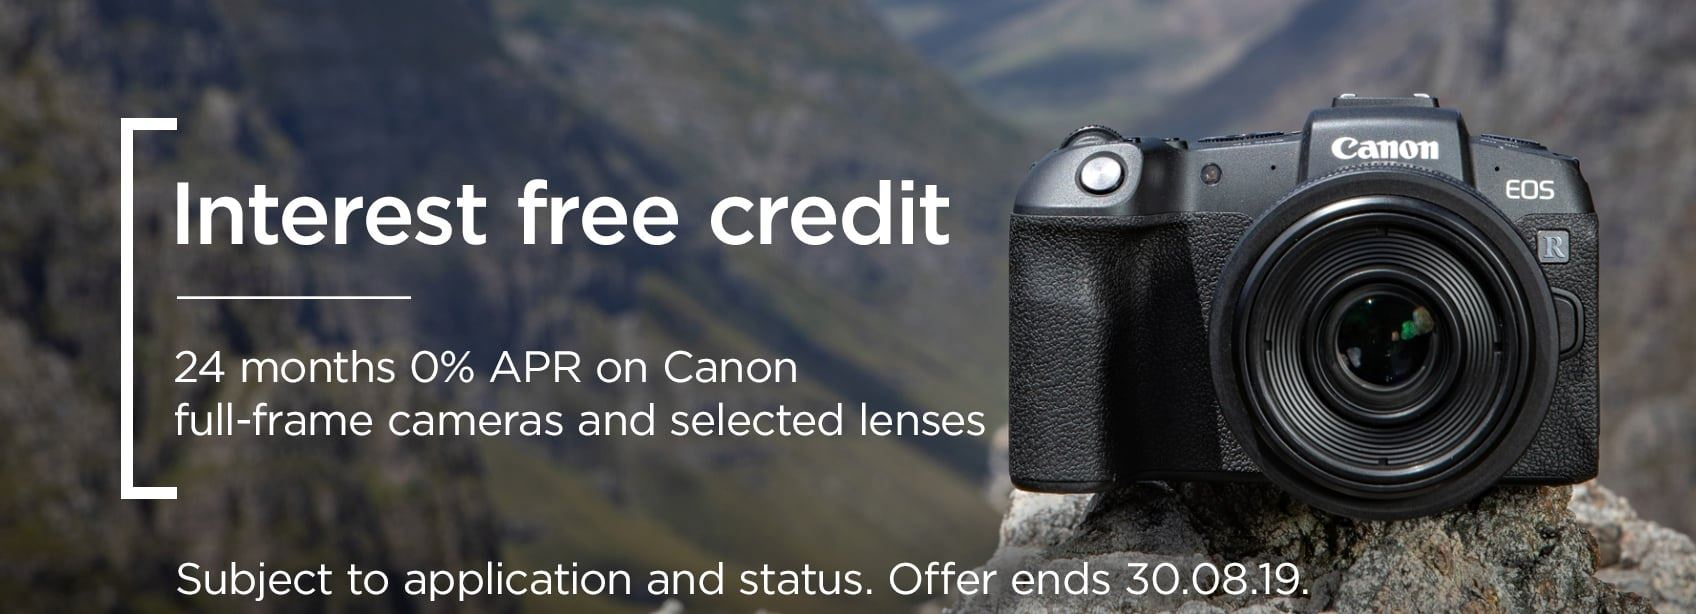 24 months' 0% APR on Canon full-frame cameras and selected lenses